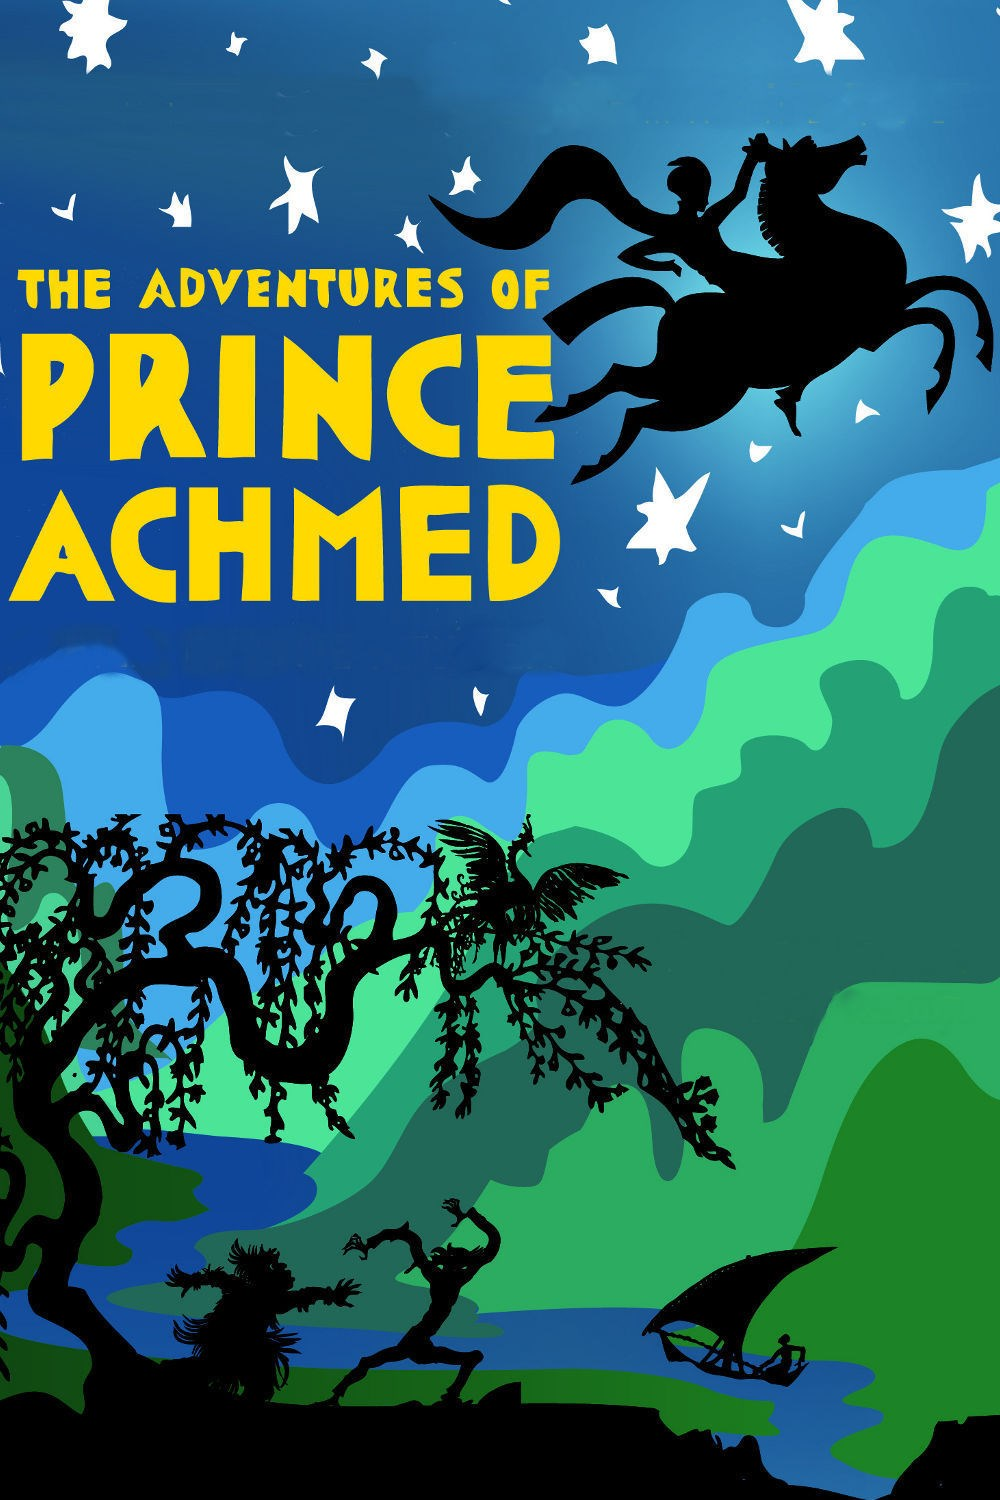 Gif maudit lotte reiniger the adventures of prince achmed.